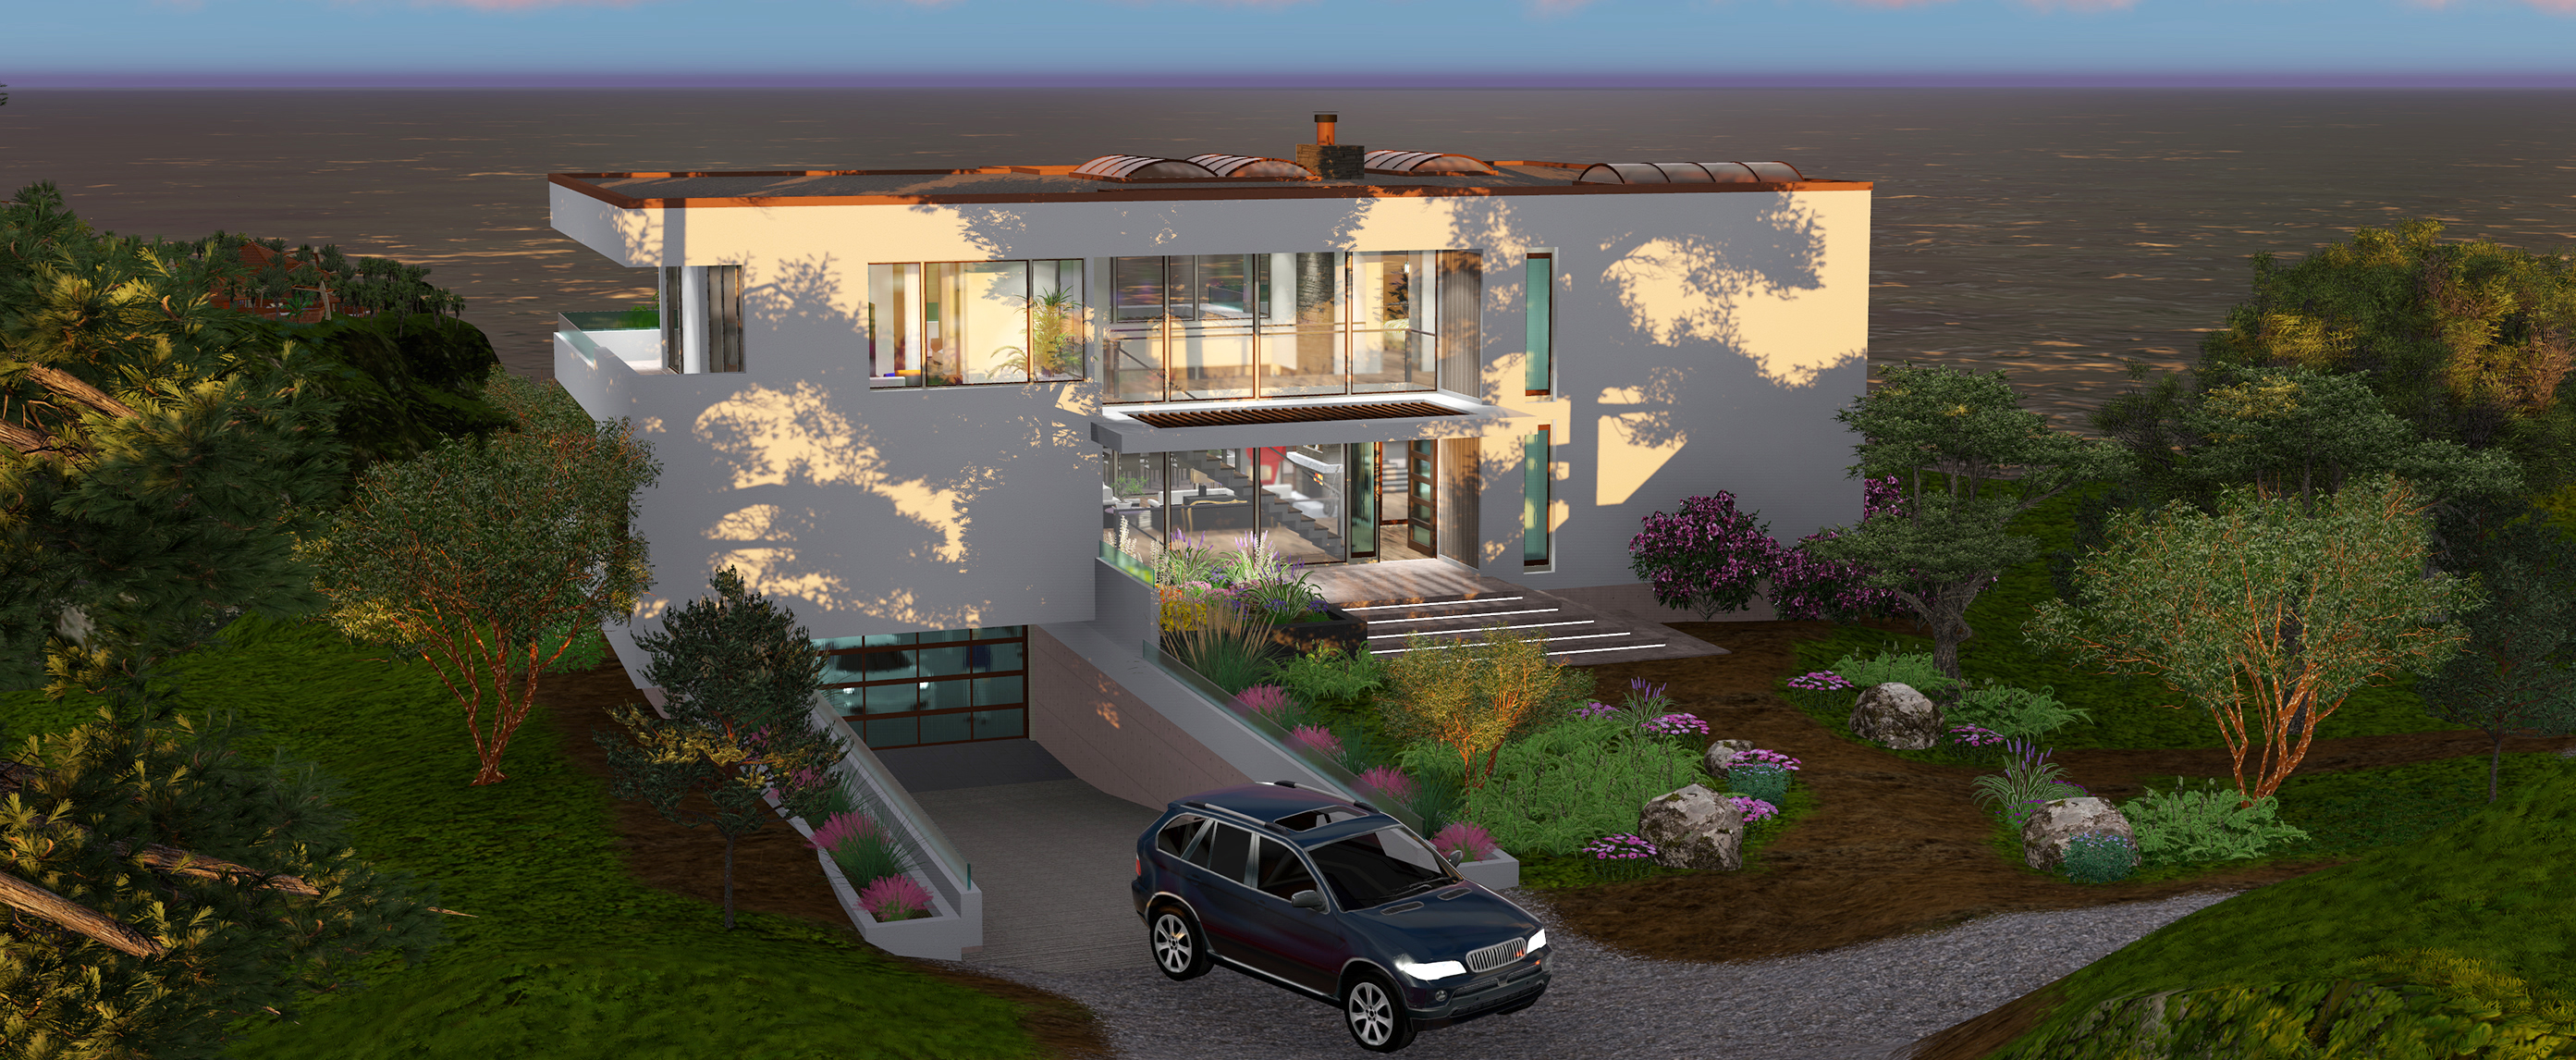 Beverly_Hills_Dream_House-01